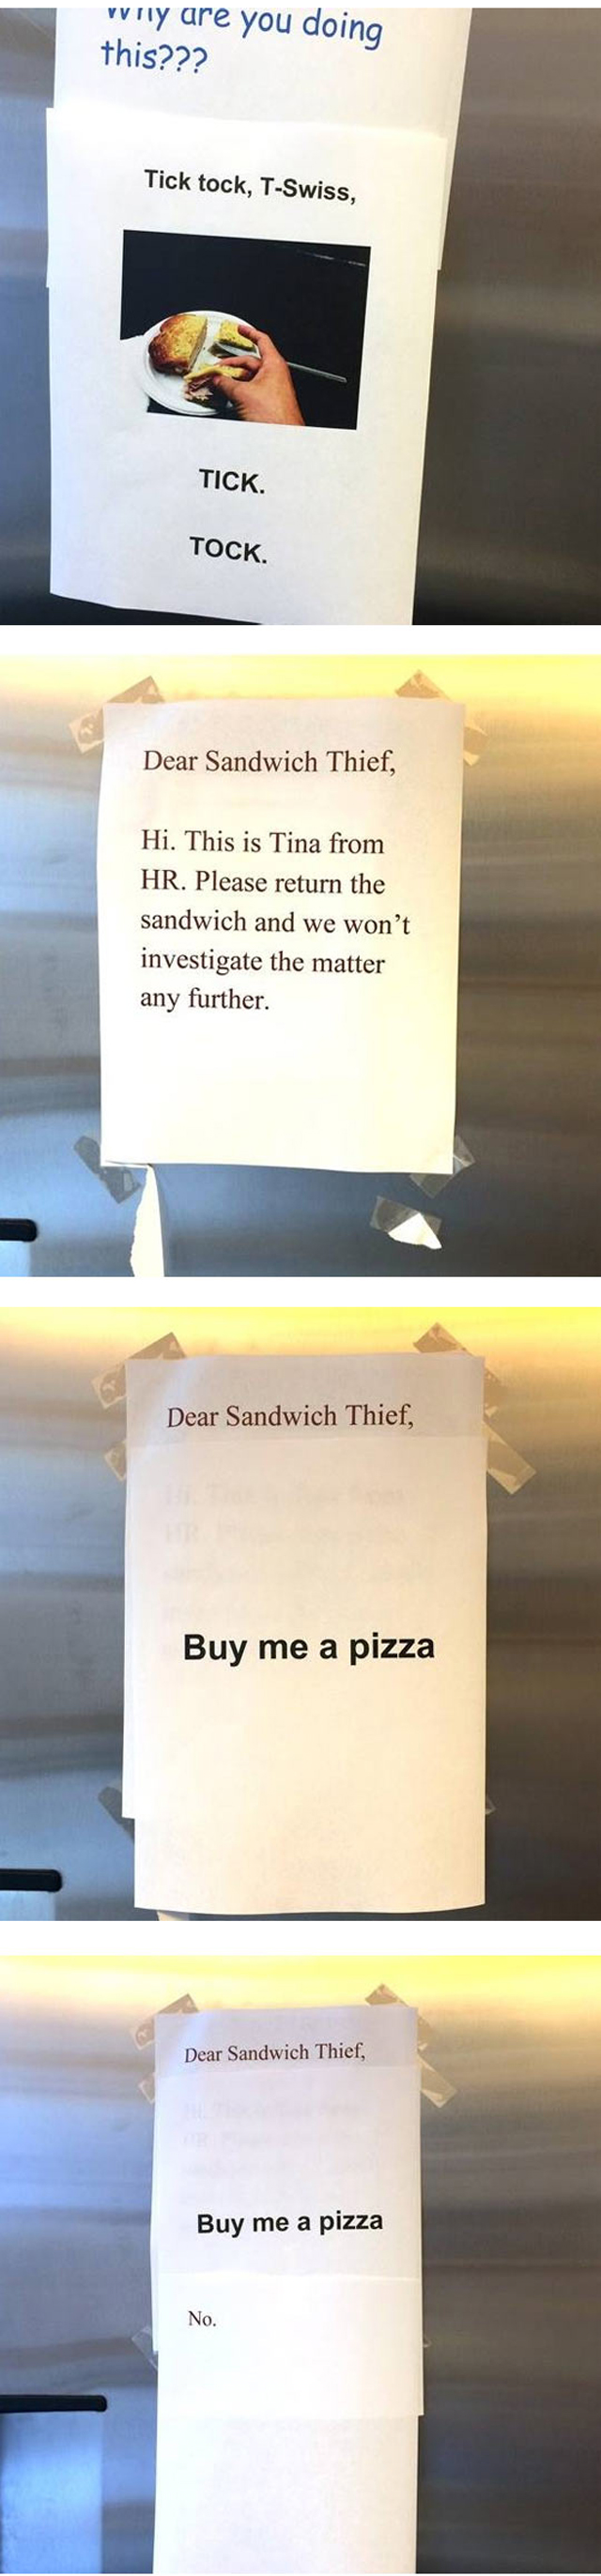 sandwich-thief3